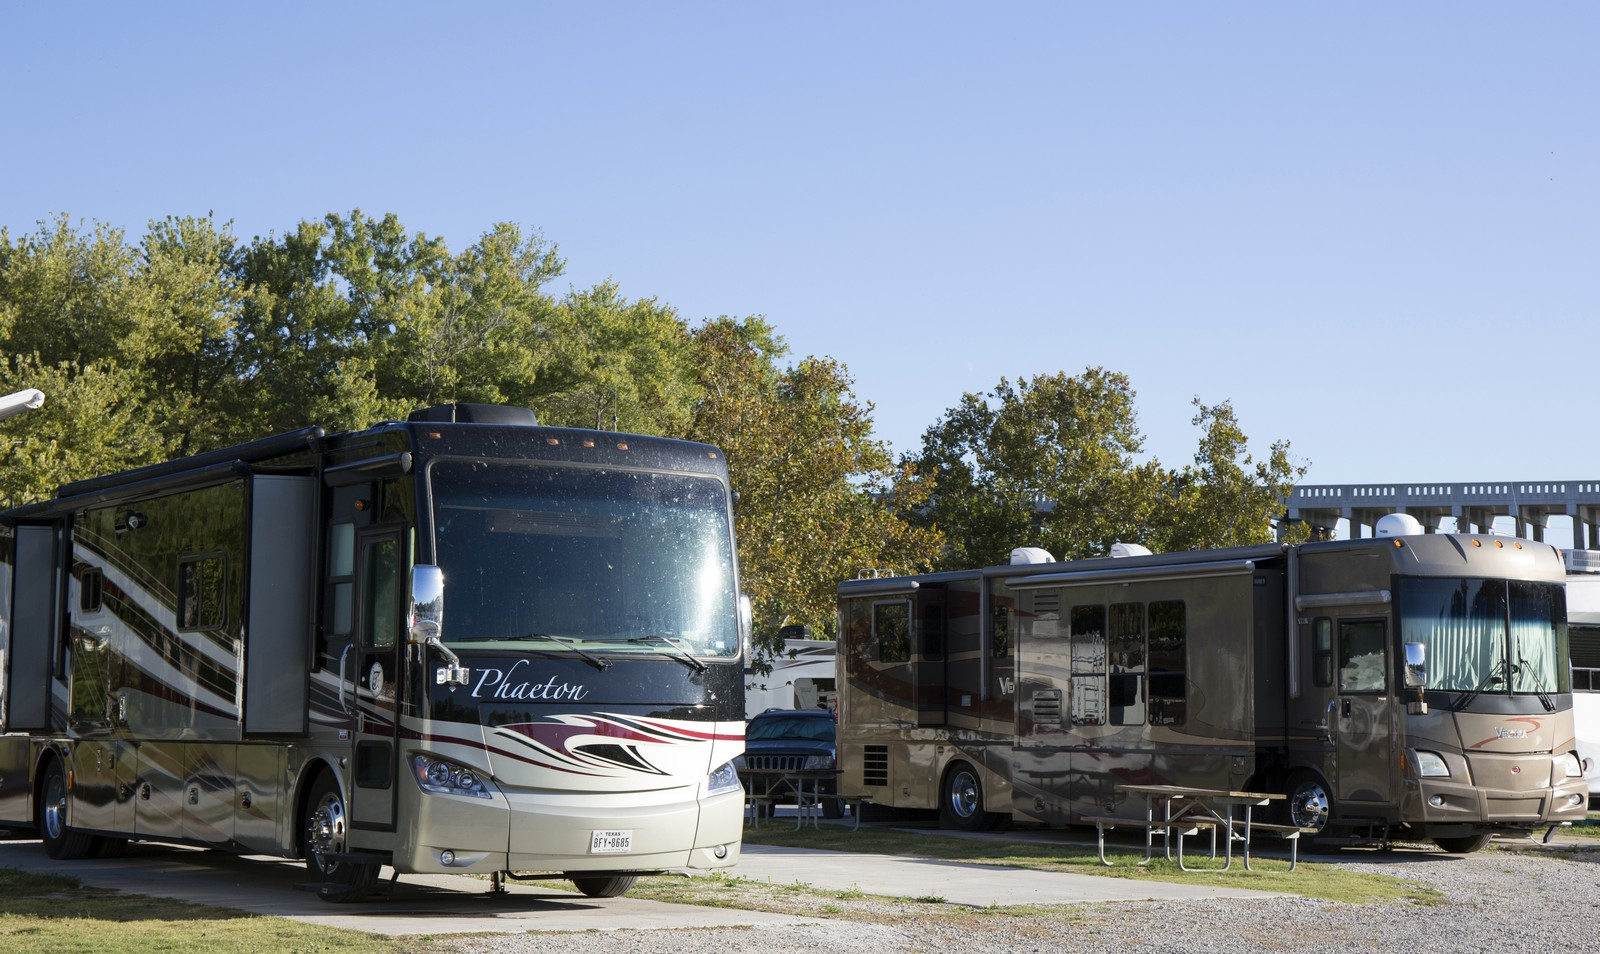 Premium sites with concrete pads available that can accommodate RV's up to 90 feet.